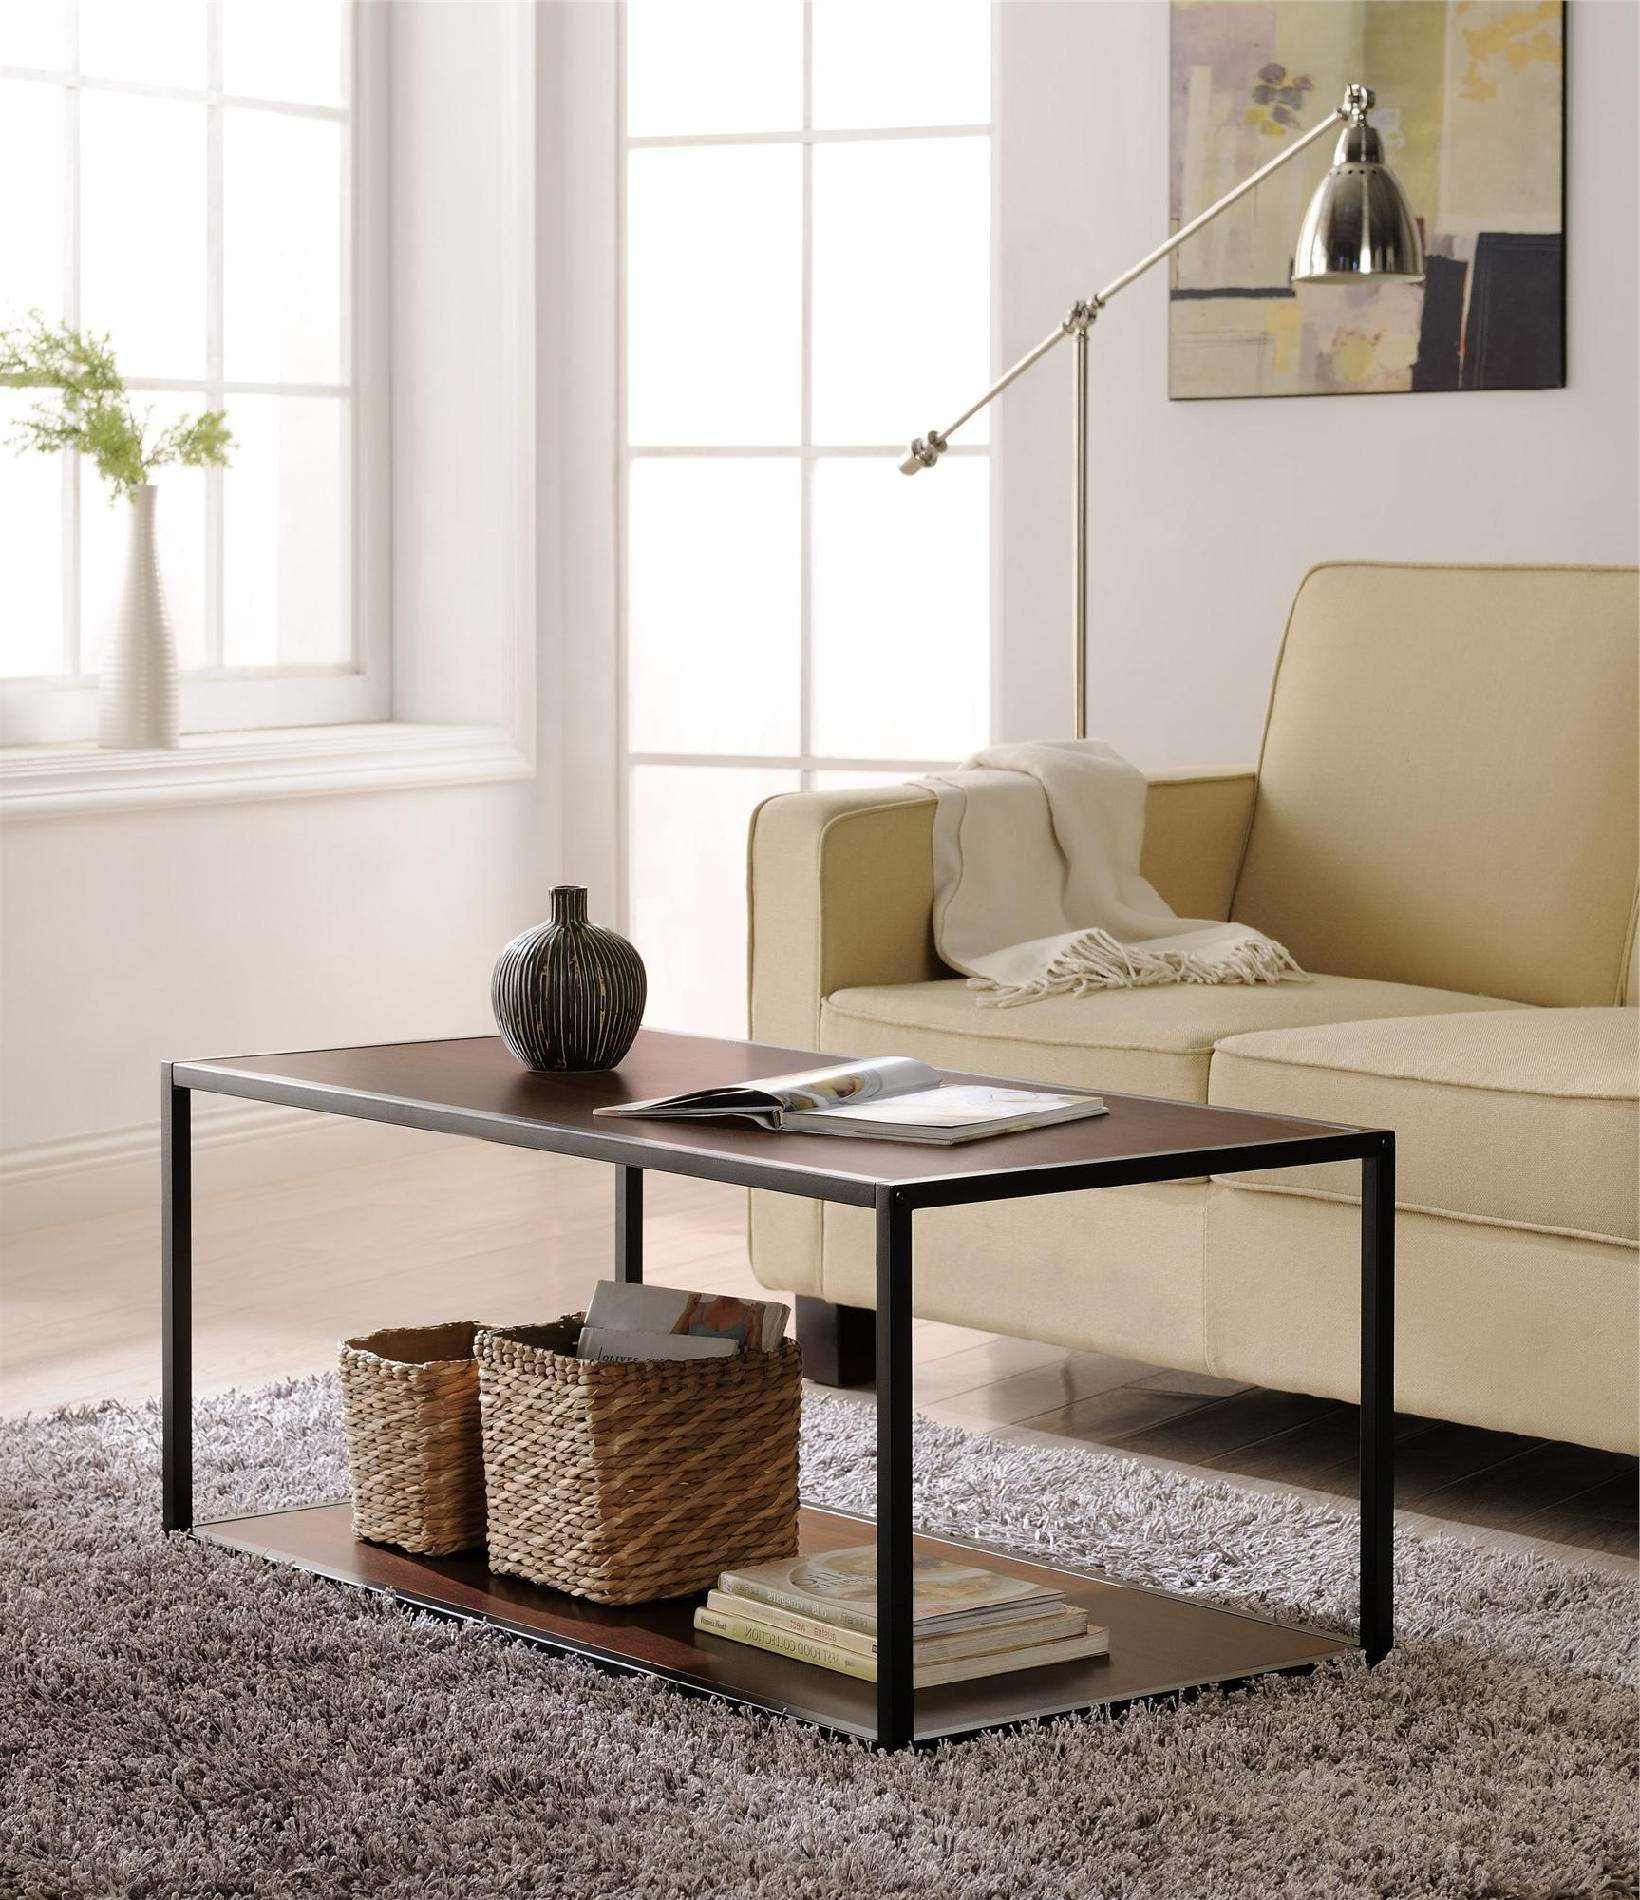 Best And Newest Low Industrial Coffee Tables Within Coffee Tables : Rustic Reclaimed Farmhouse Pallet Wood Style (View 1 of 20)